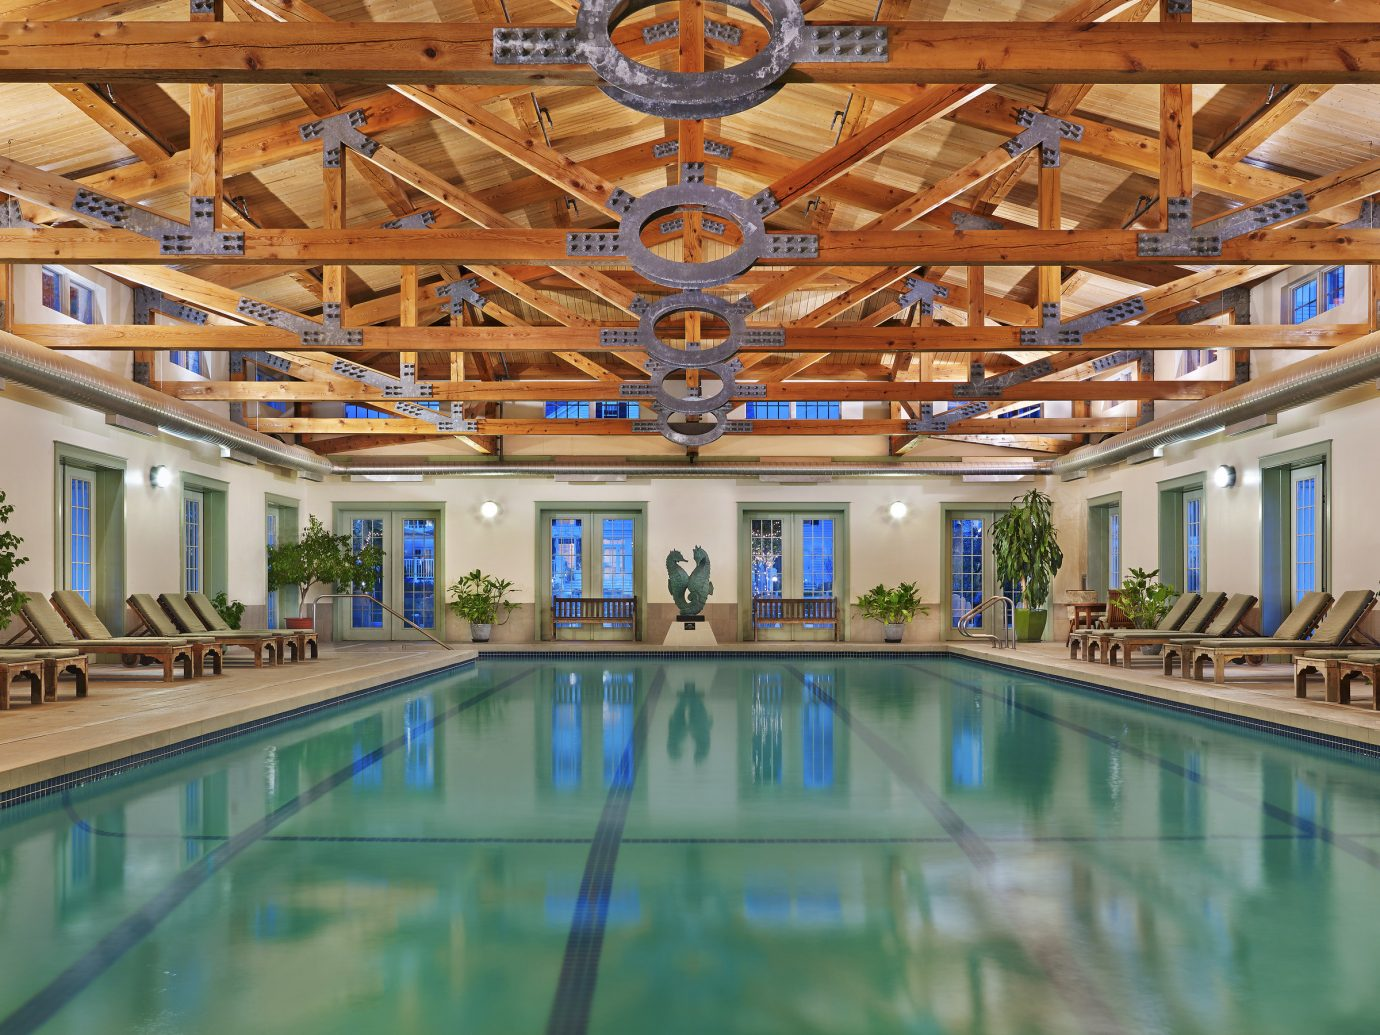 Health + Wellness Spa Retreats Trip Ideas indoor ceiling swimming pool leisure estate property building Resort leisure centre palace mansion thermae several